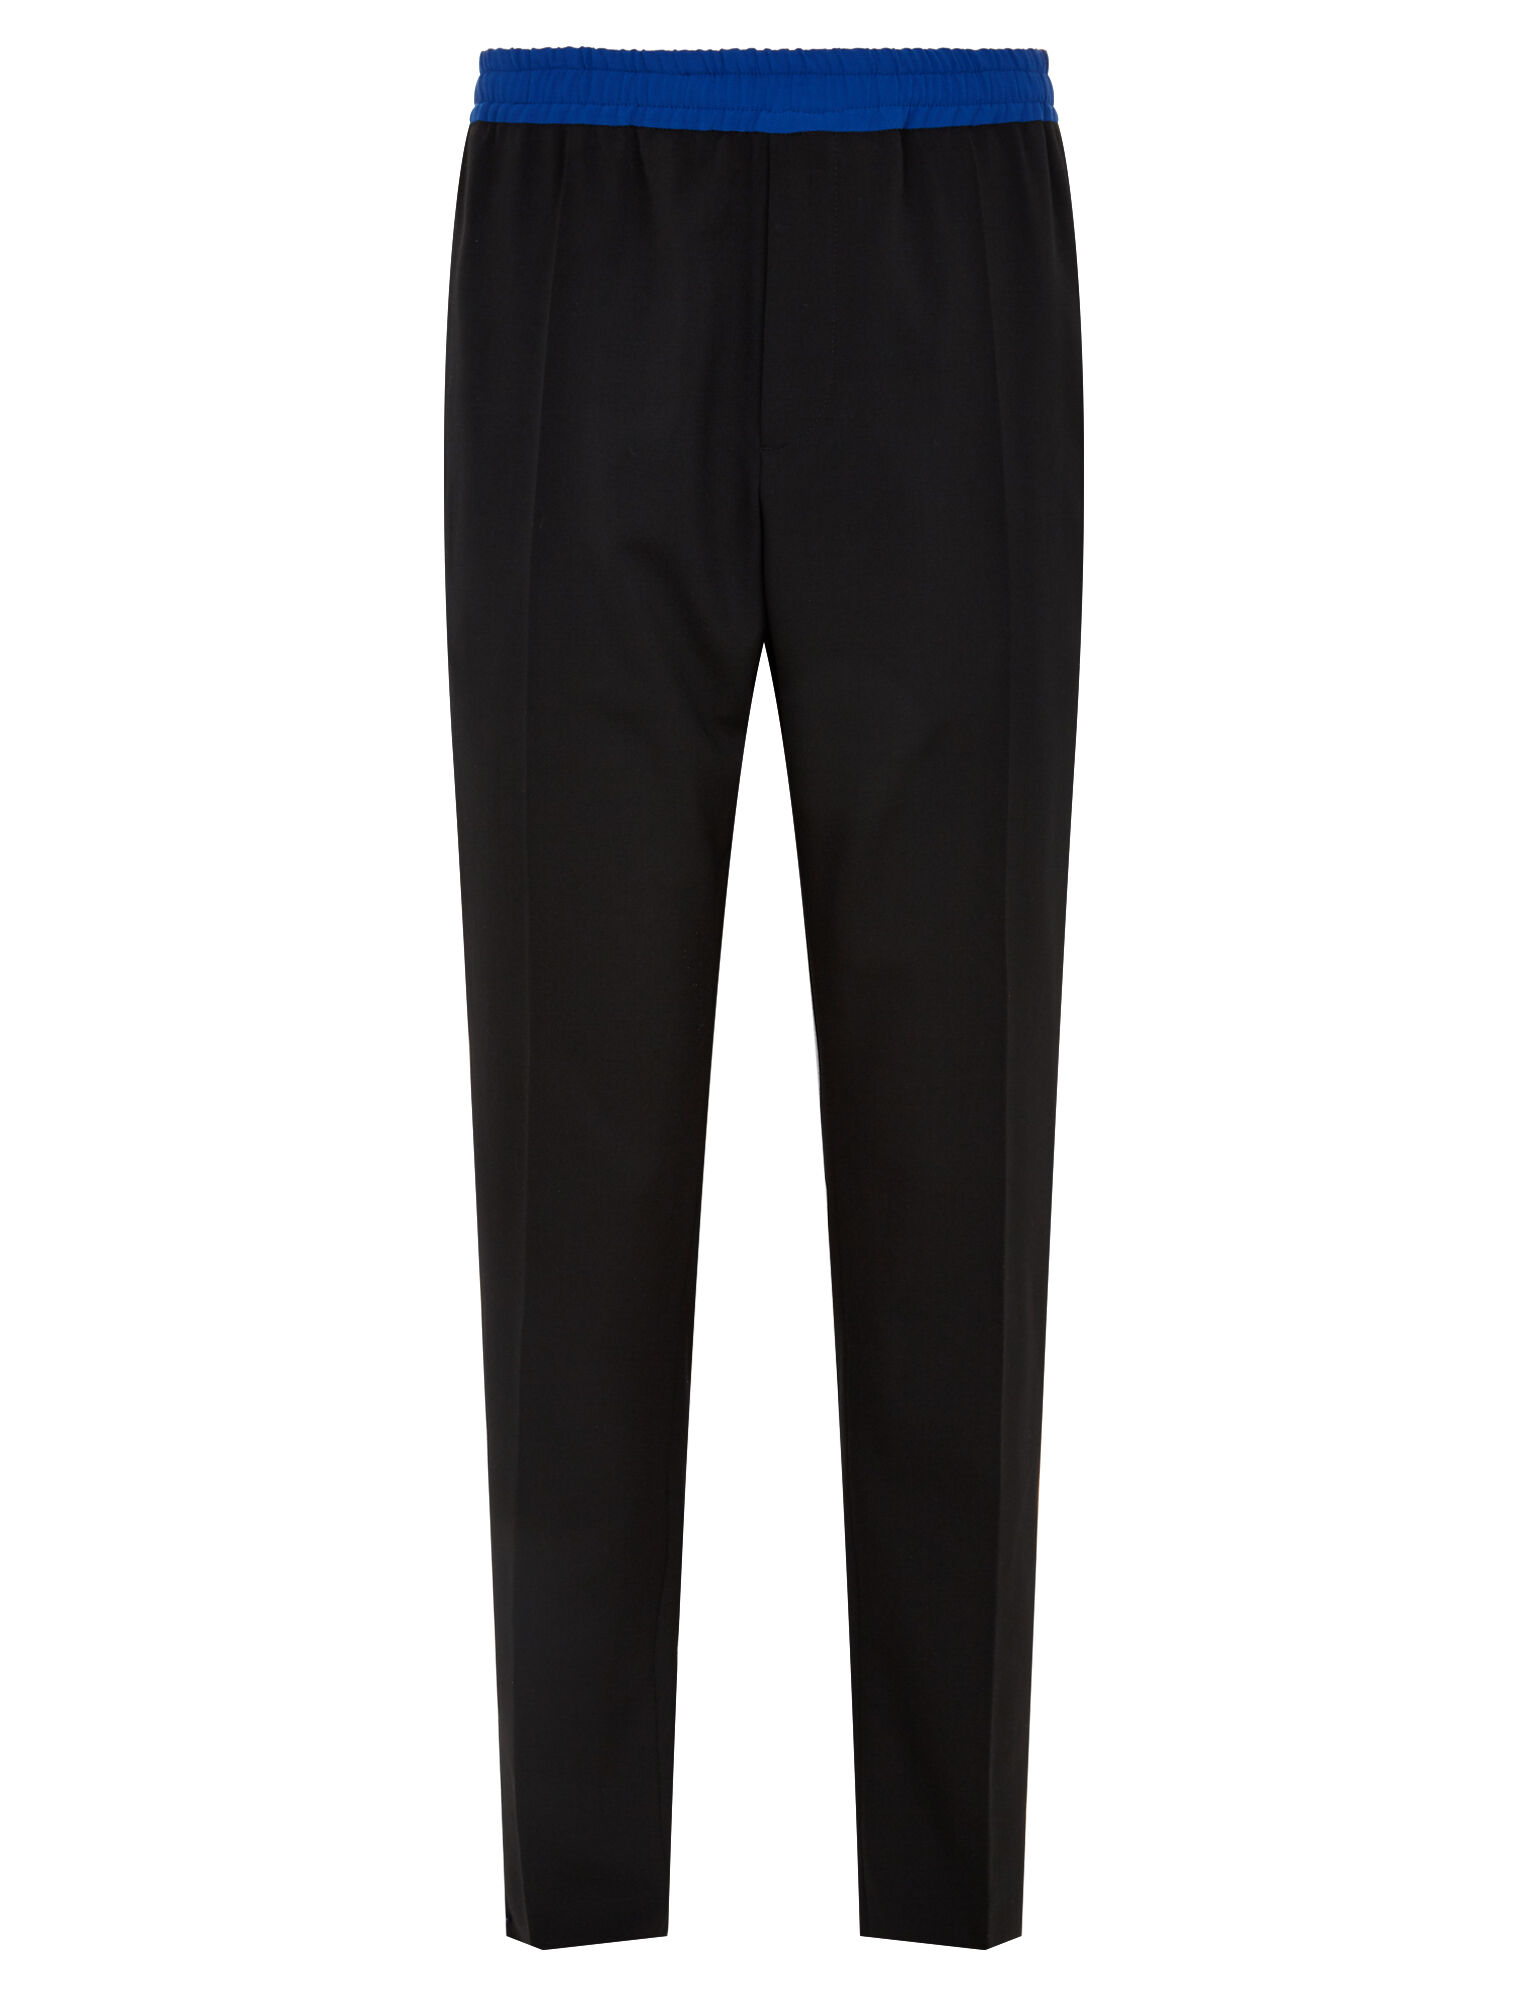 Joseph, Eza Techno Wool Stretch Tricolours Trousers, in BLACK COMBO